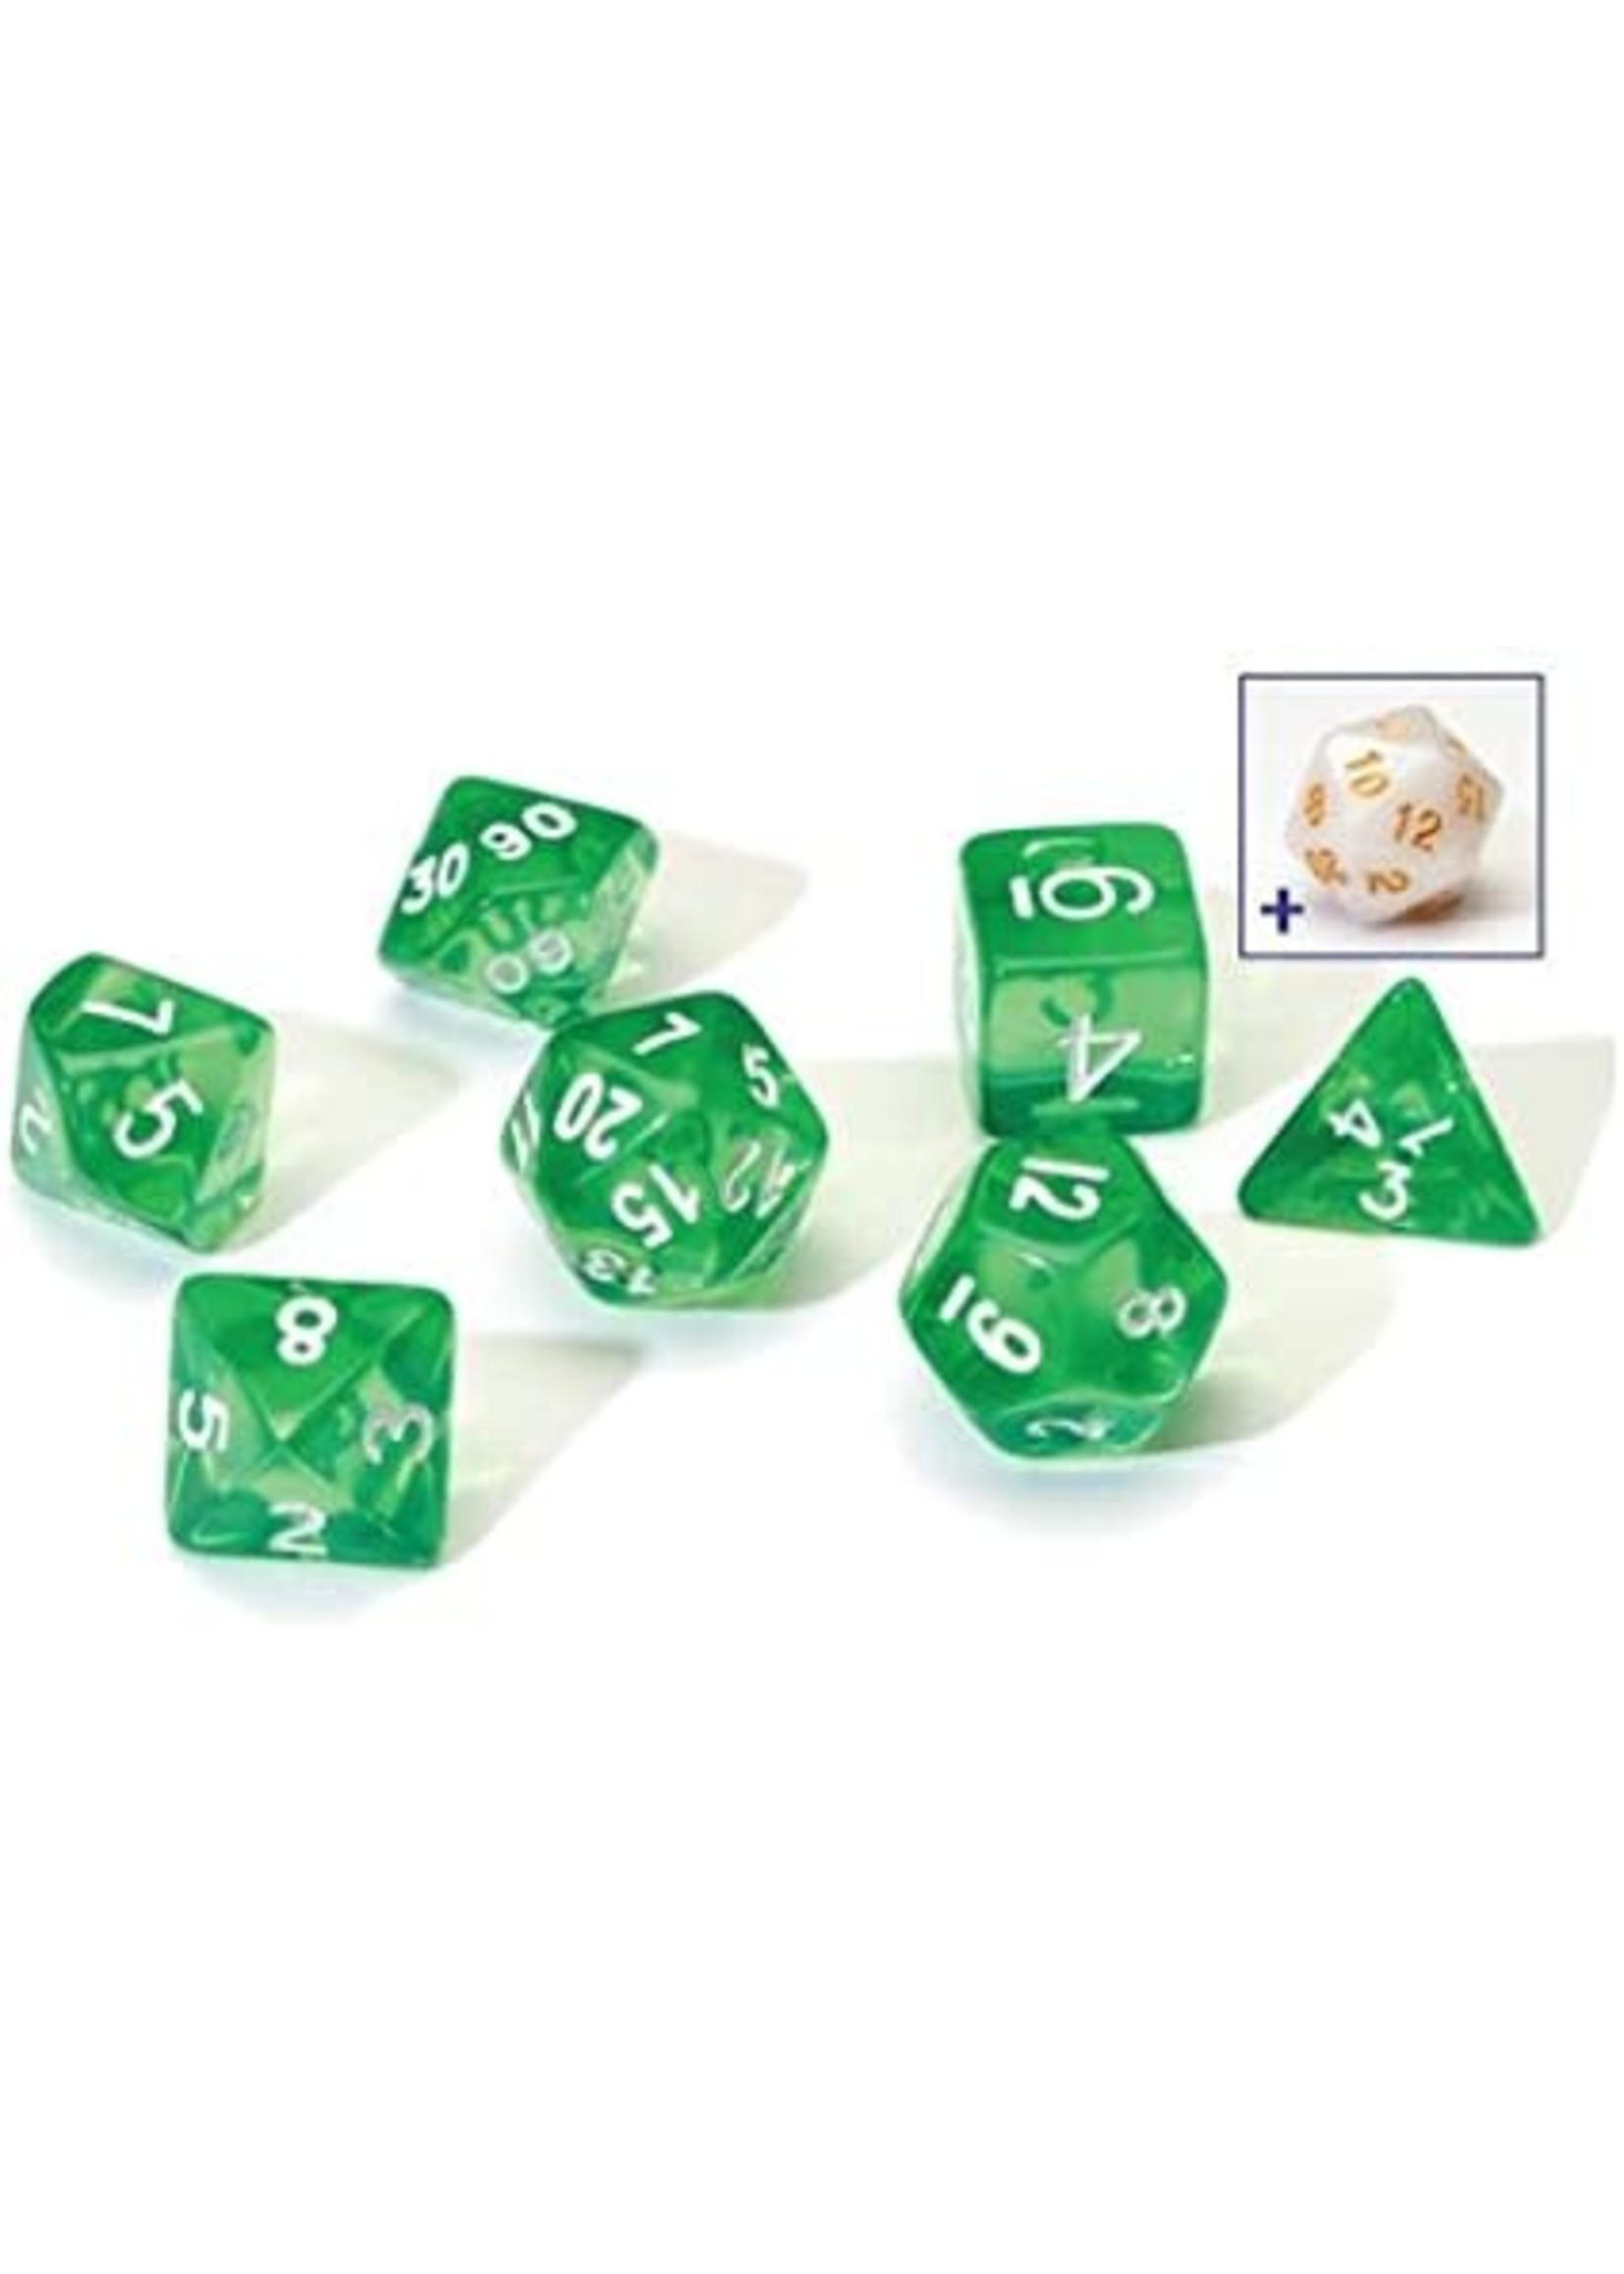 RPG Dice Set (7): Translucent Green Resin